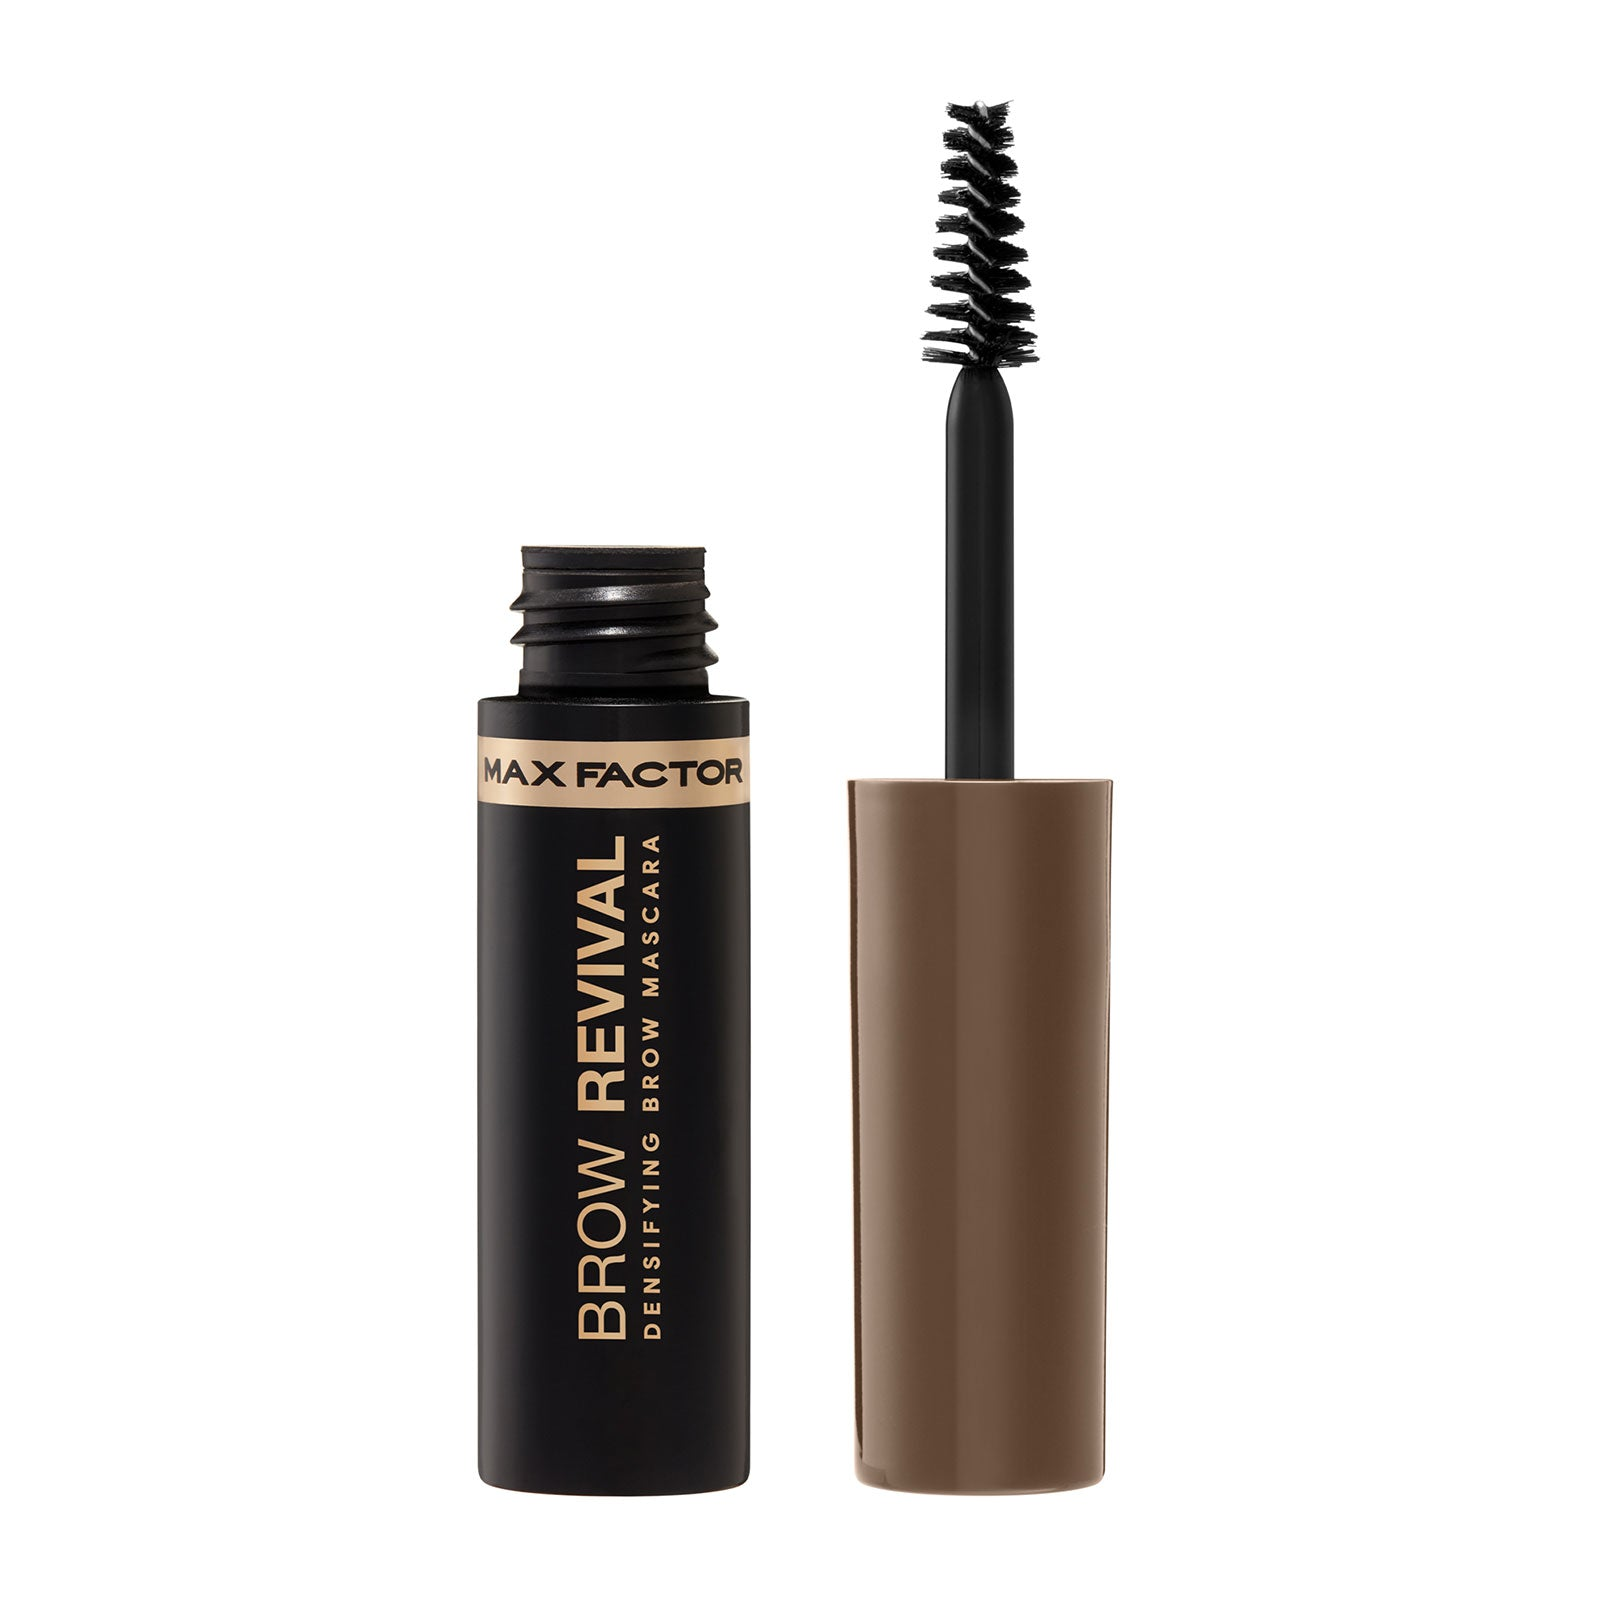 Max Factor Brow Revival Densifying Eyebrow Gel with Oils and Fibers 4.5g